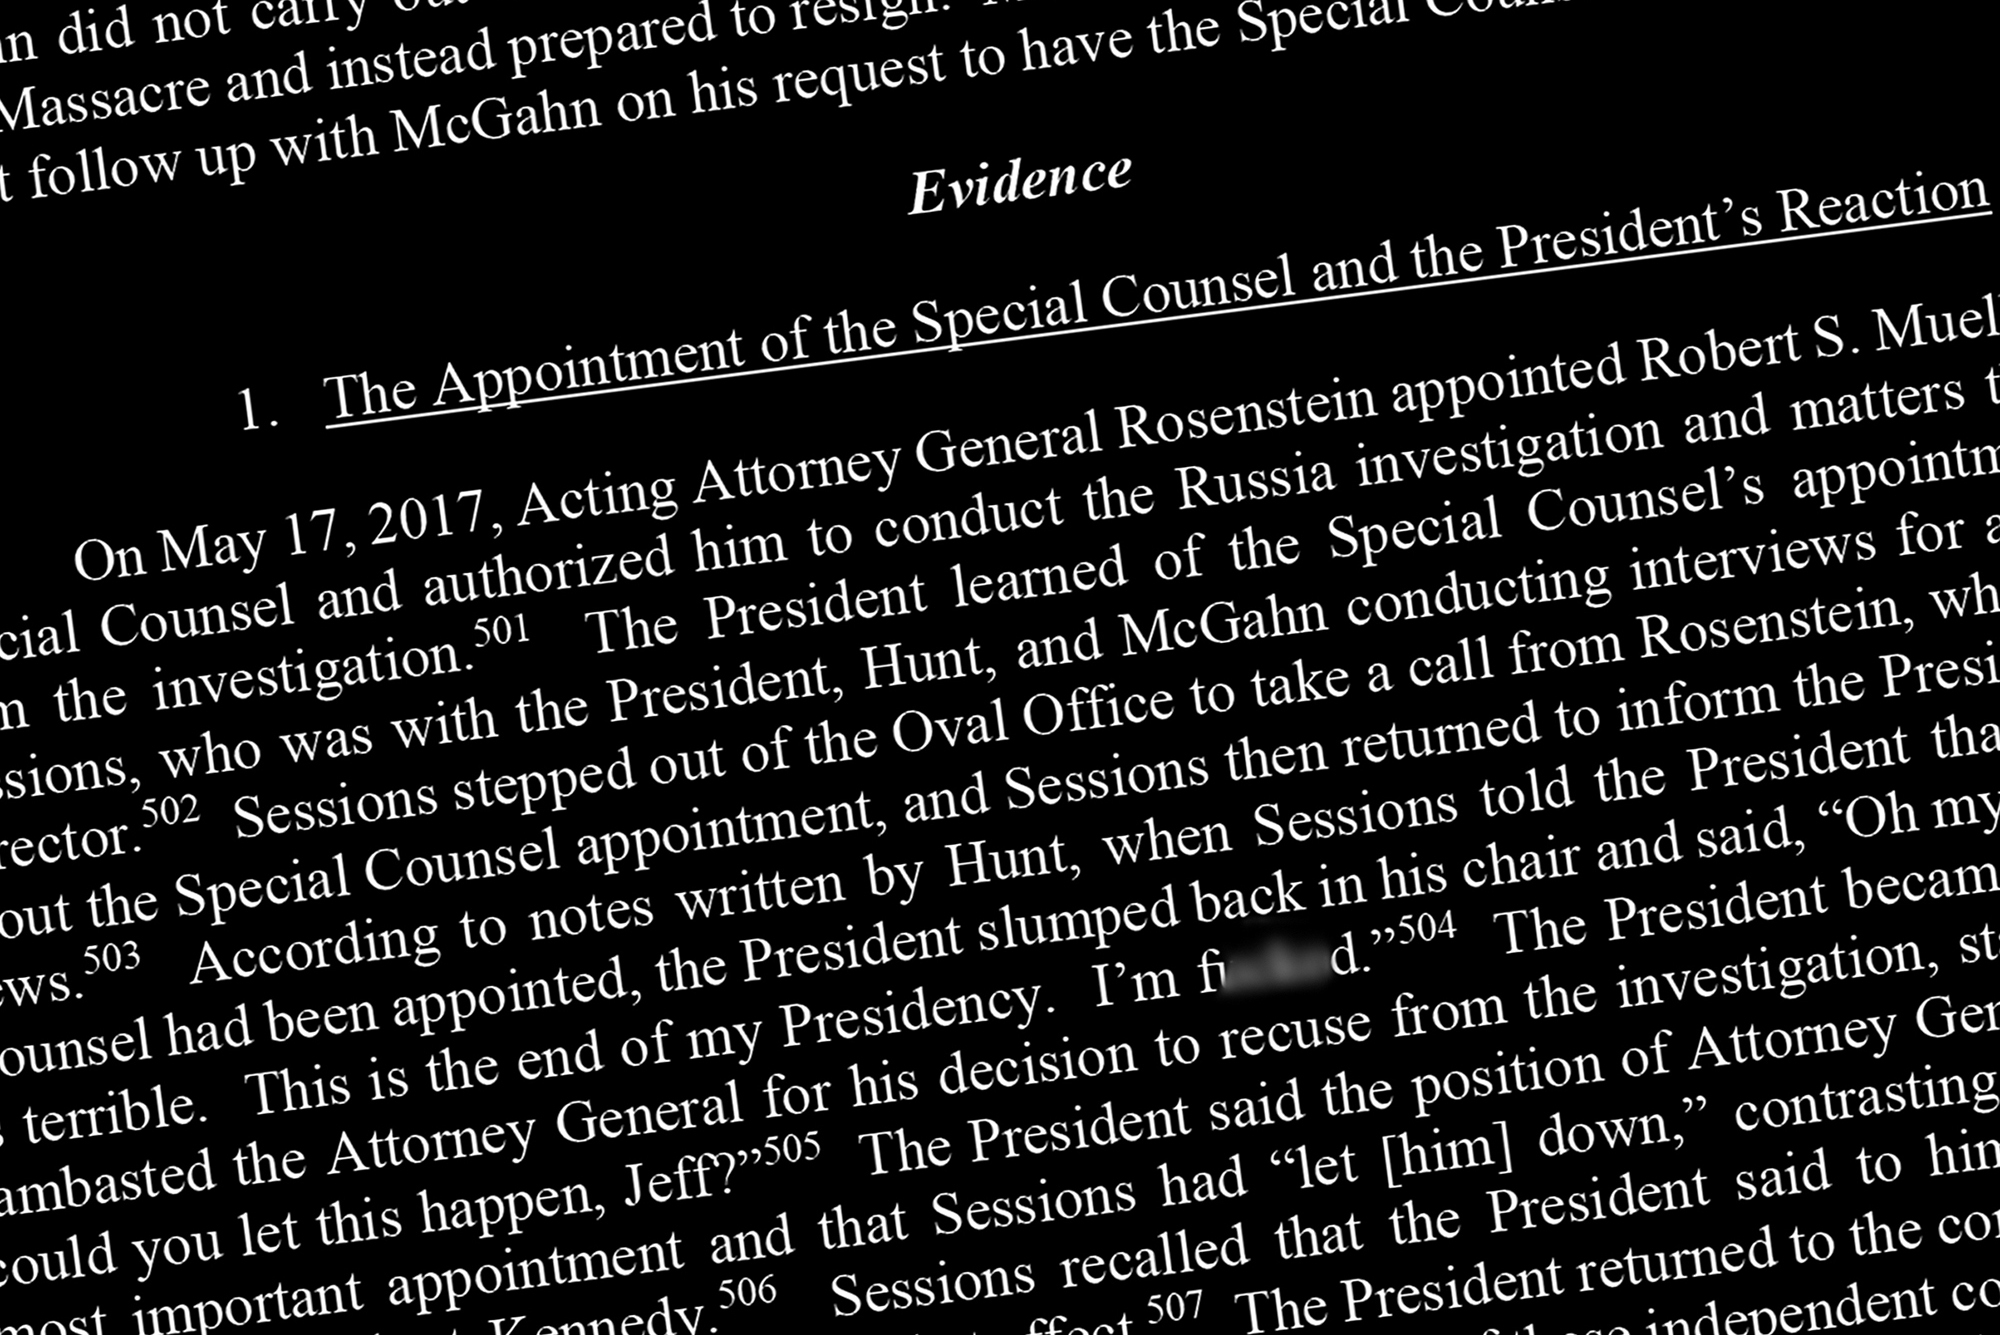 Donald Trump got away with obstructing the investigation into his campaign's dealings with Russia when it interfered in the 2016 election, also known as the Mueller inquiry. The Mueller report detailed the ways that the president thwarted the special counsel's efforts to discover the truth about how the Trump campaign may have cooperated with Russia to secure electoral victory.